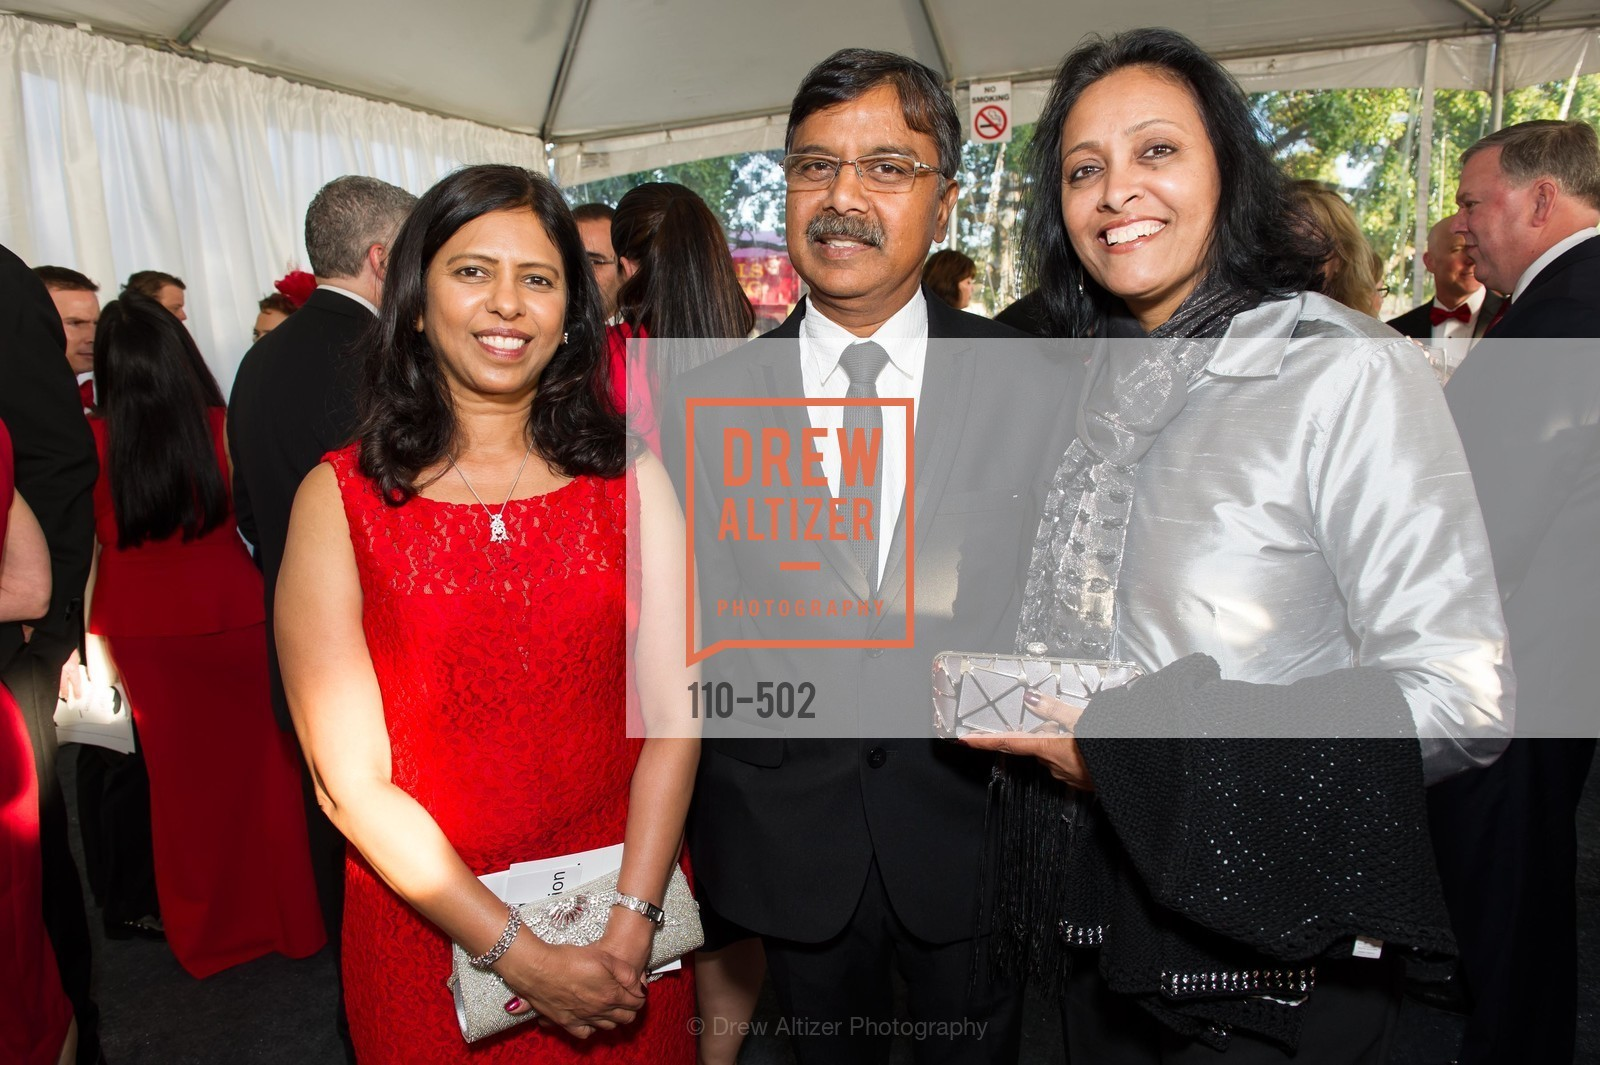 Radha Katta, Shiva Prasab, Sandhya Prasab, 2014 RED CROSS Gala Honoring Paula Downey as the American Red Cross Bay Area Chapter Humanitarian CEO of the Year, US. Treasure Island (The Great Lawn), April 5th, 2014,Drew Altizer, Drew Altizer Photography, full-service agency, private events, San Francisco photographer, photographer california